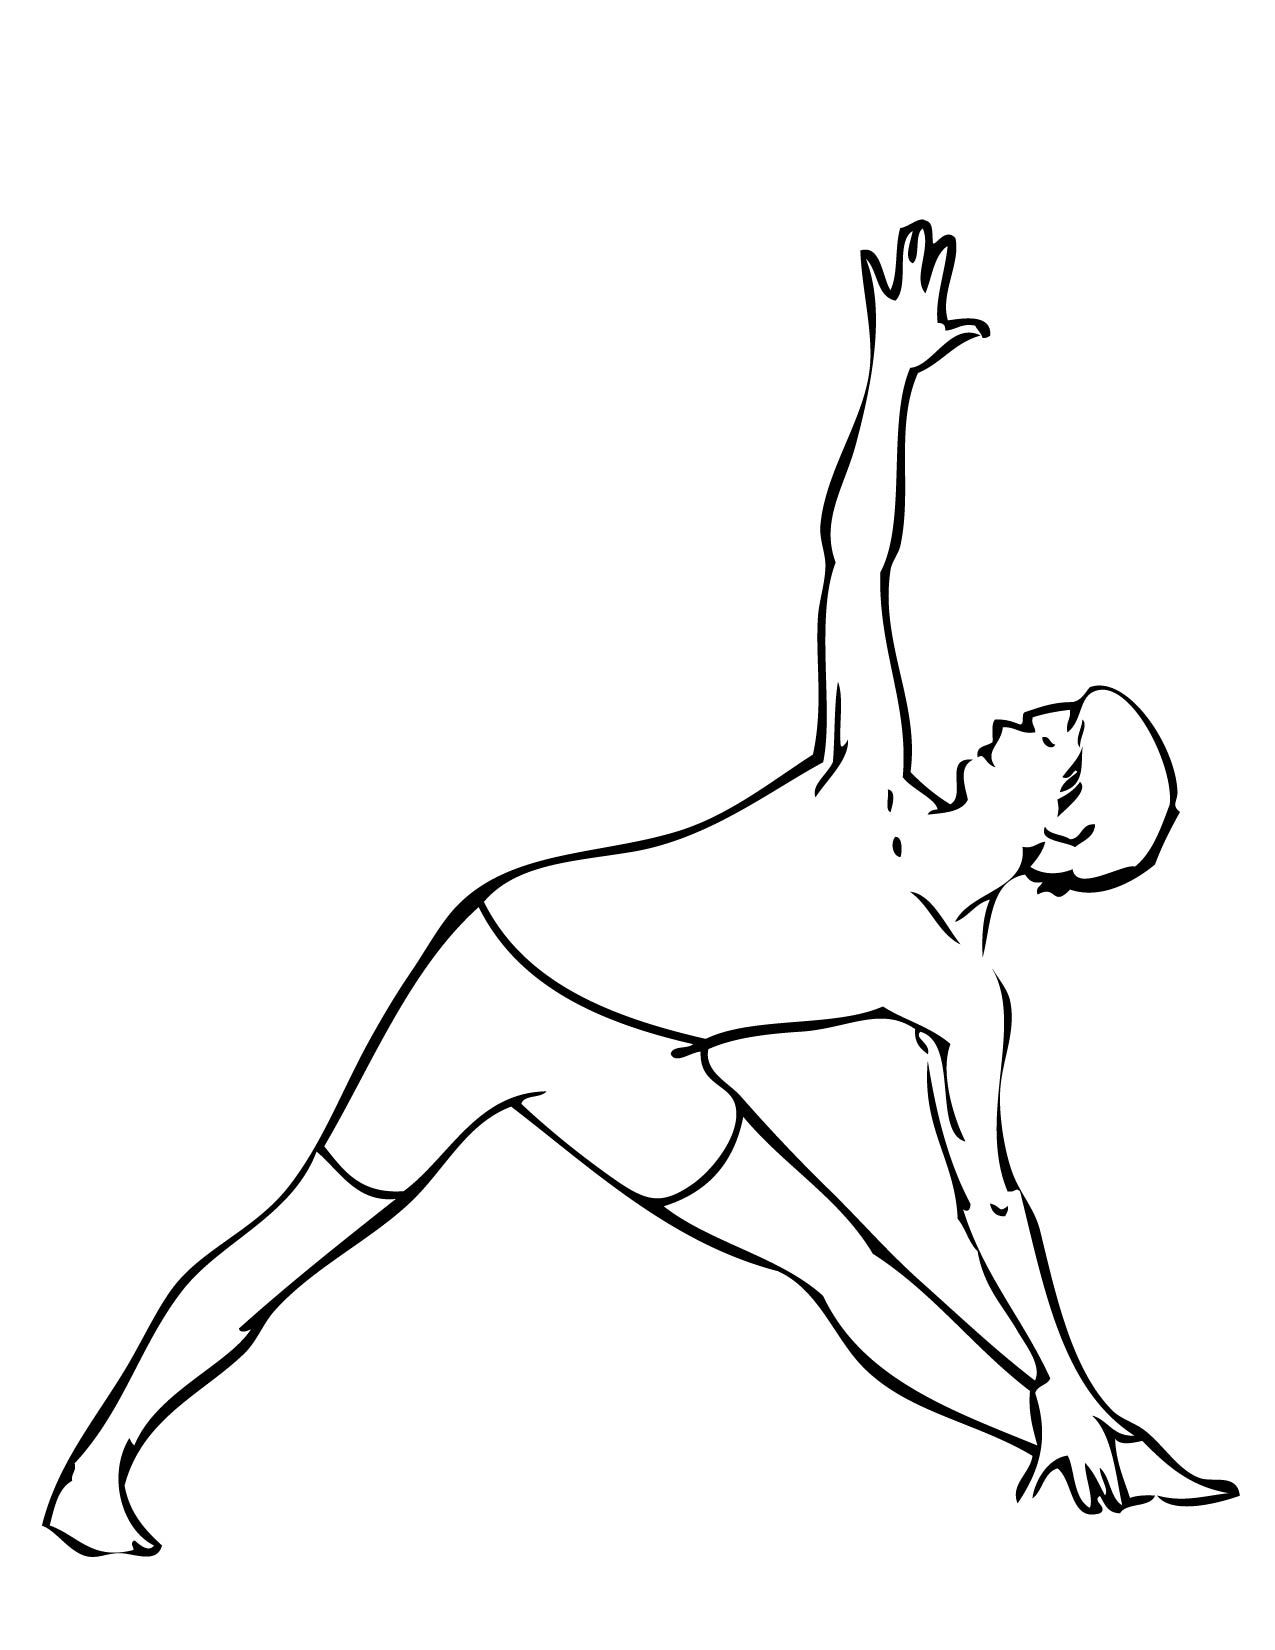 Kids Yoga Coloring Pages This Is A Free Coloring Pages To